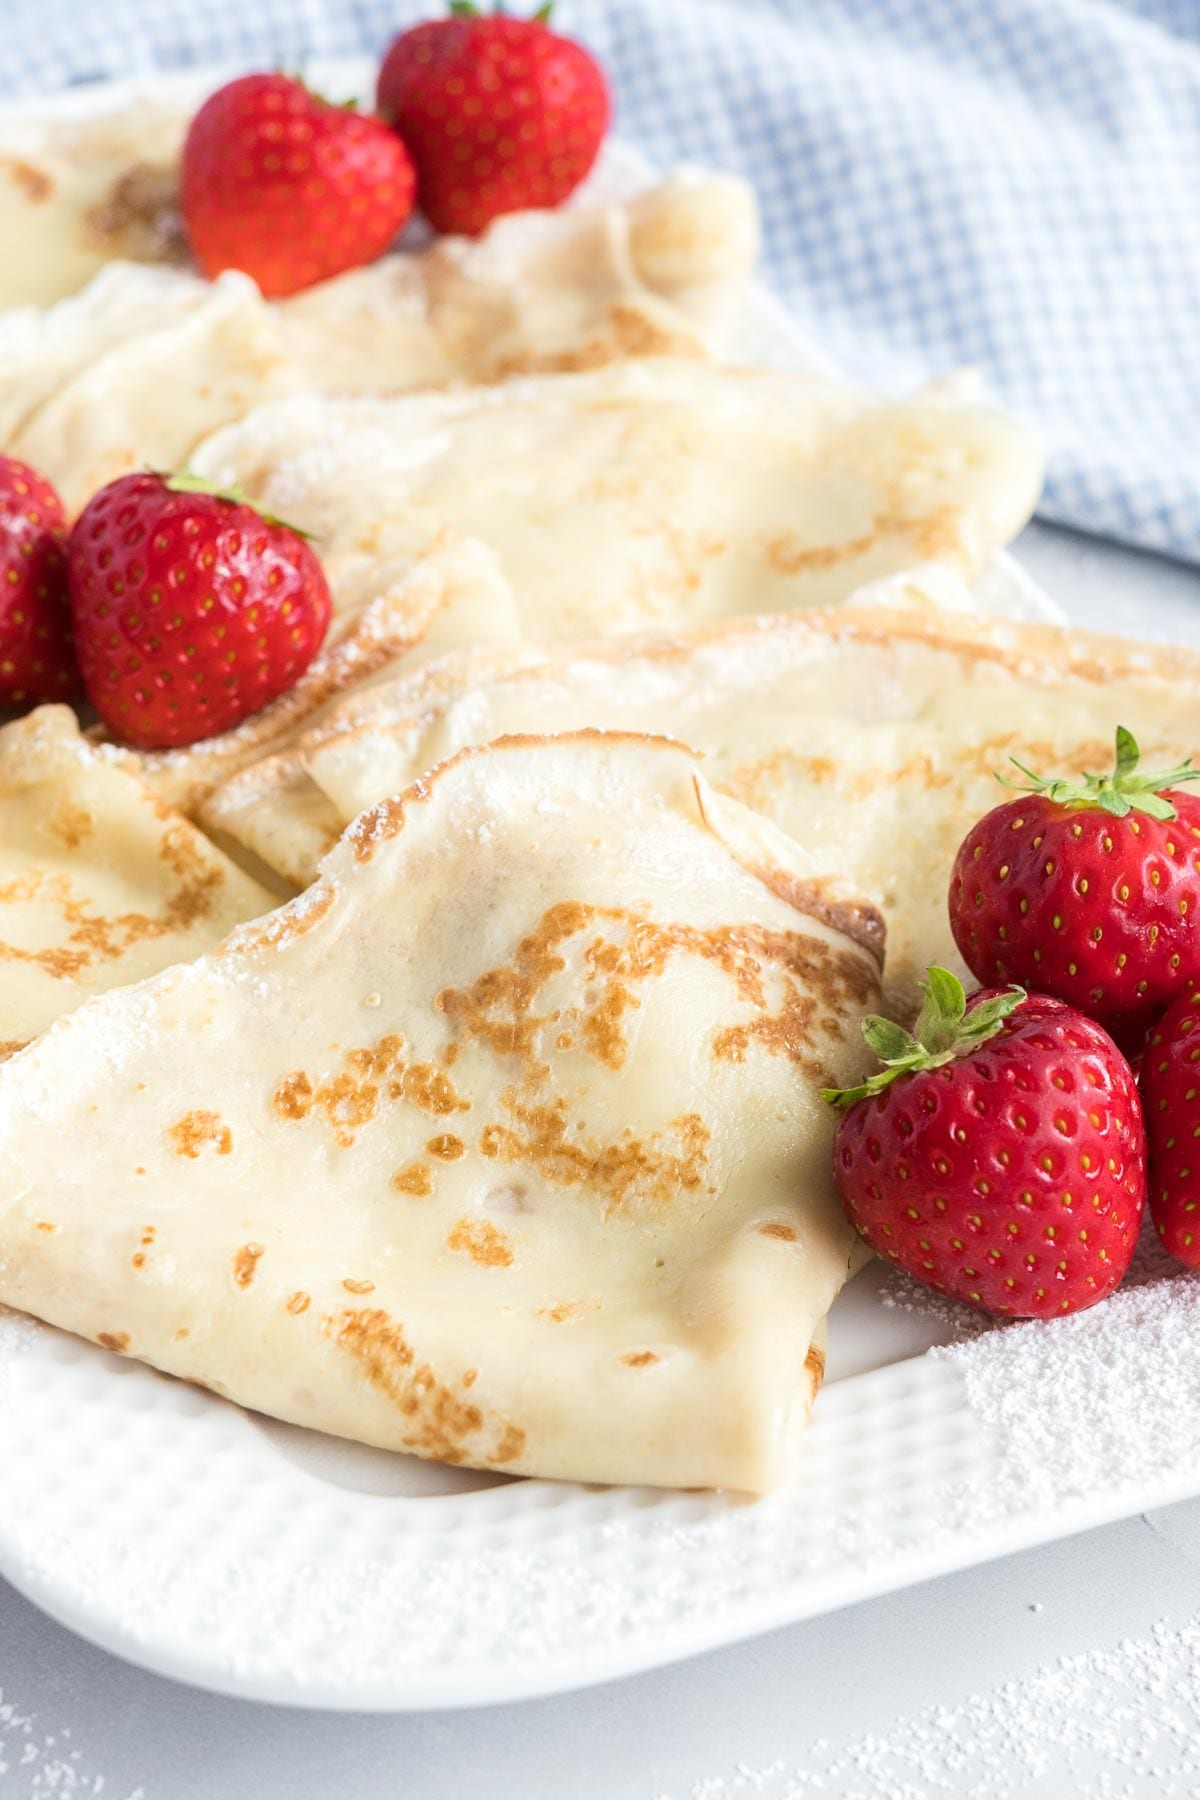 Folded crepes on a platter with fresh strawberries.